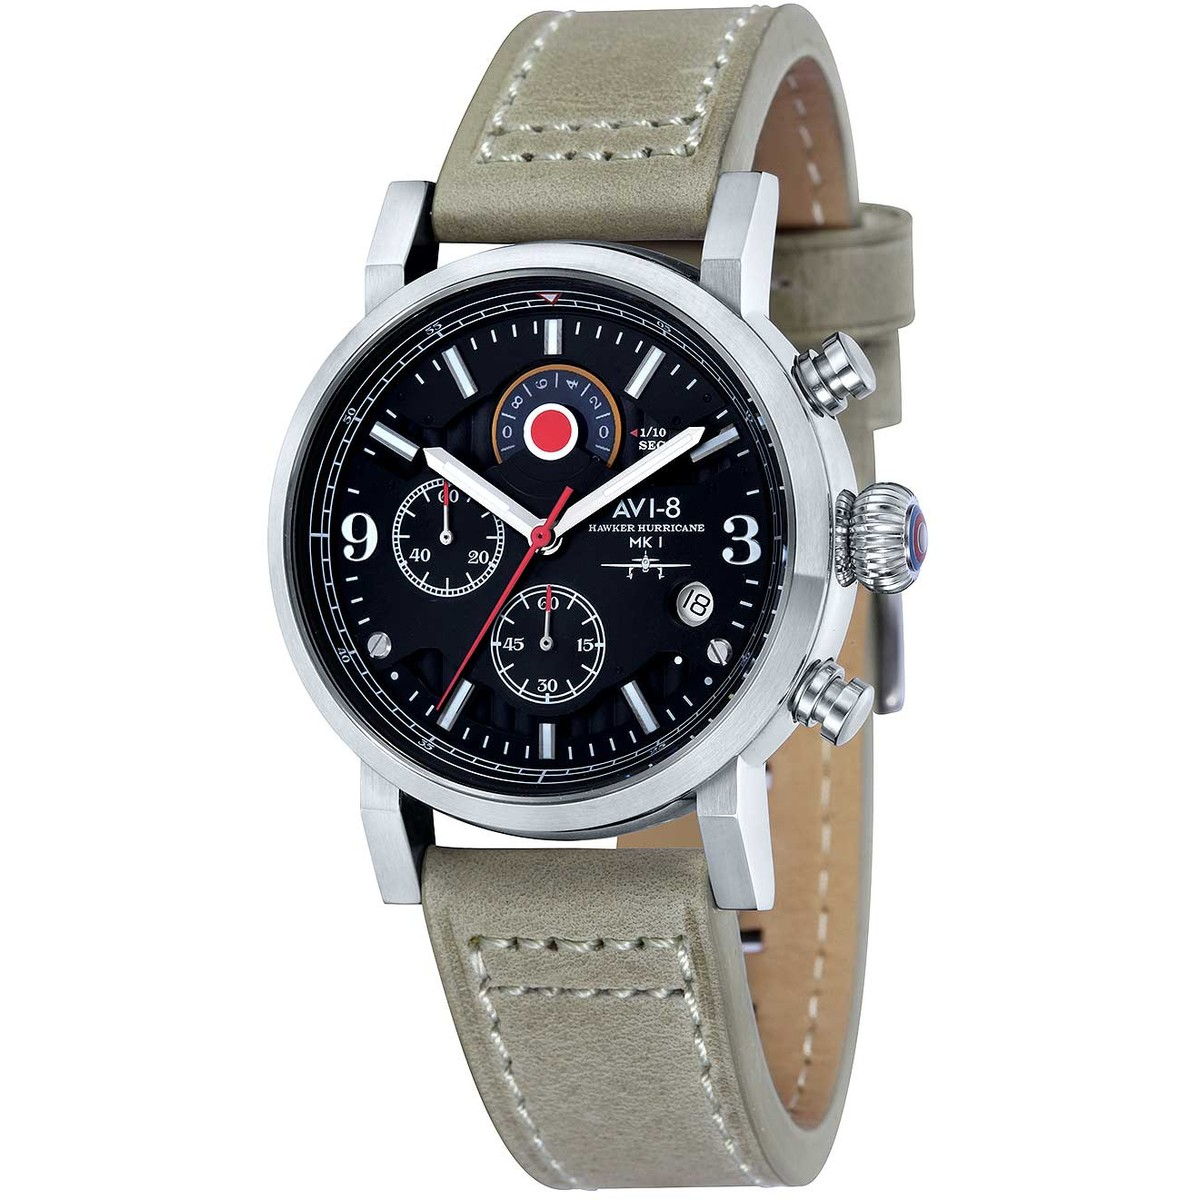 Ceas barbatesc AVI-8 Hawker Hurricane de mana original